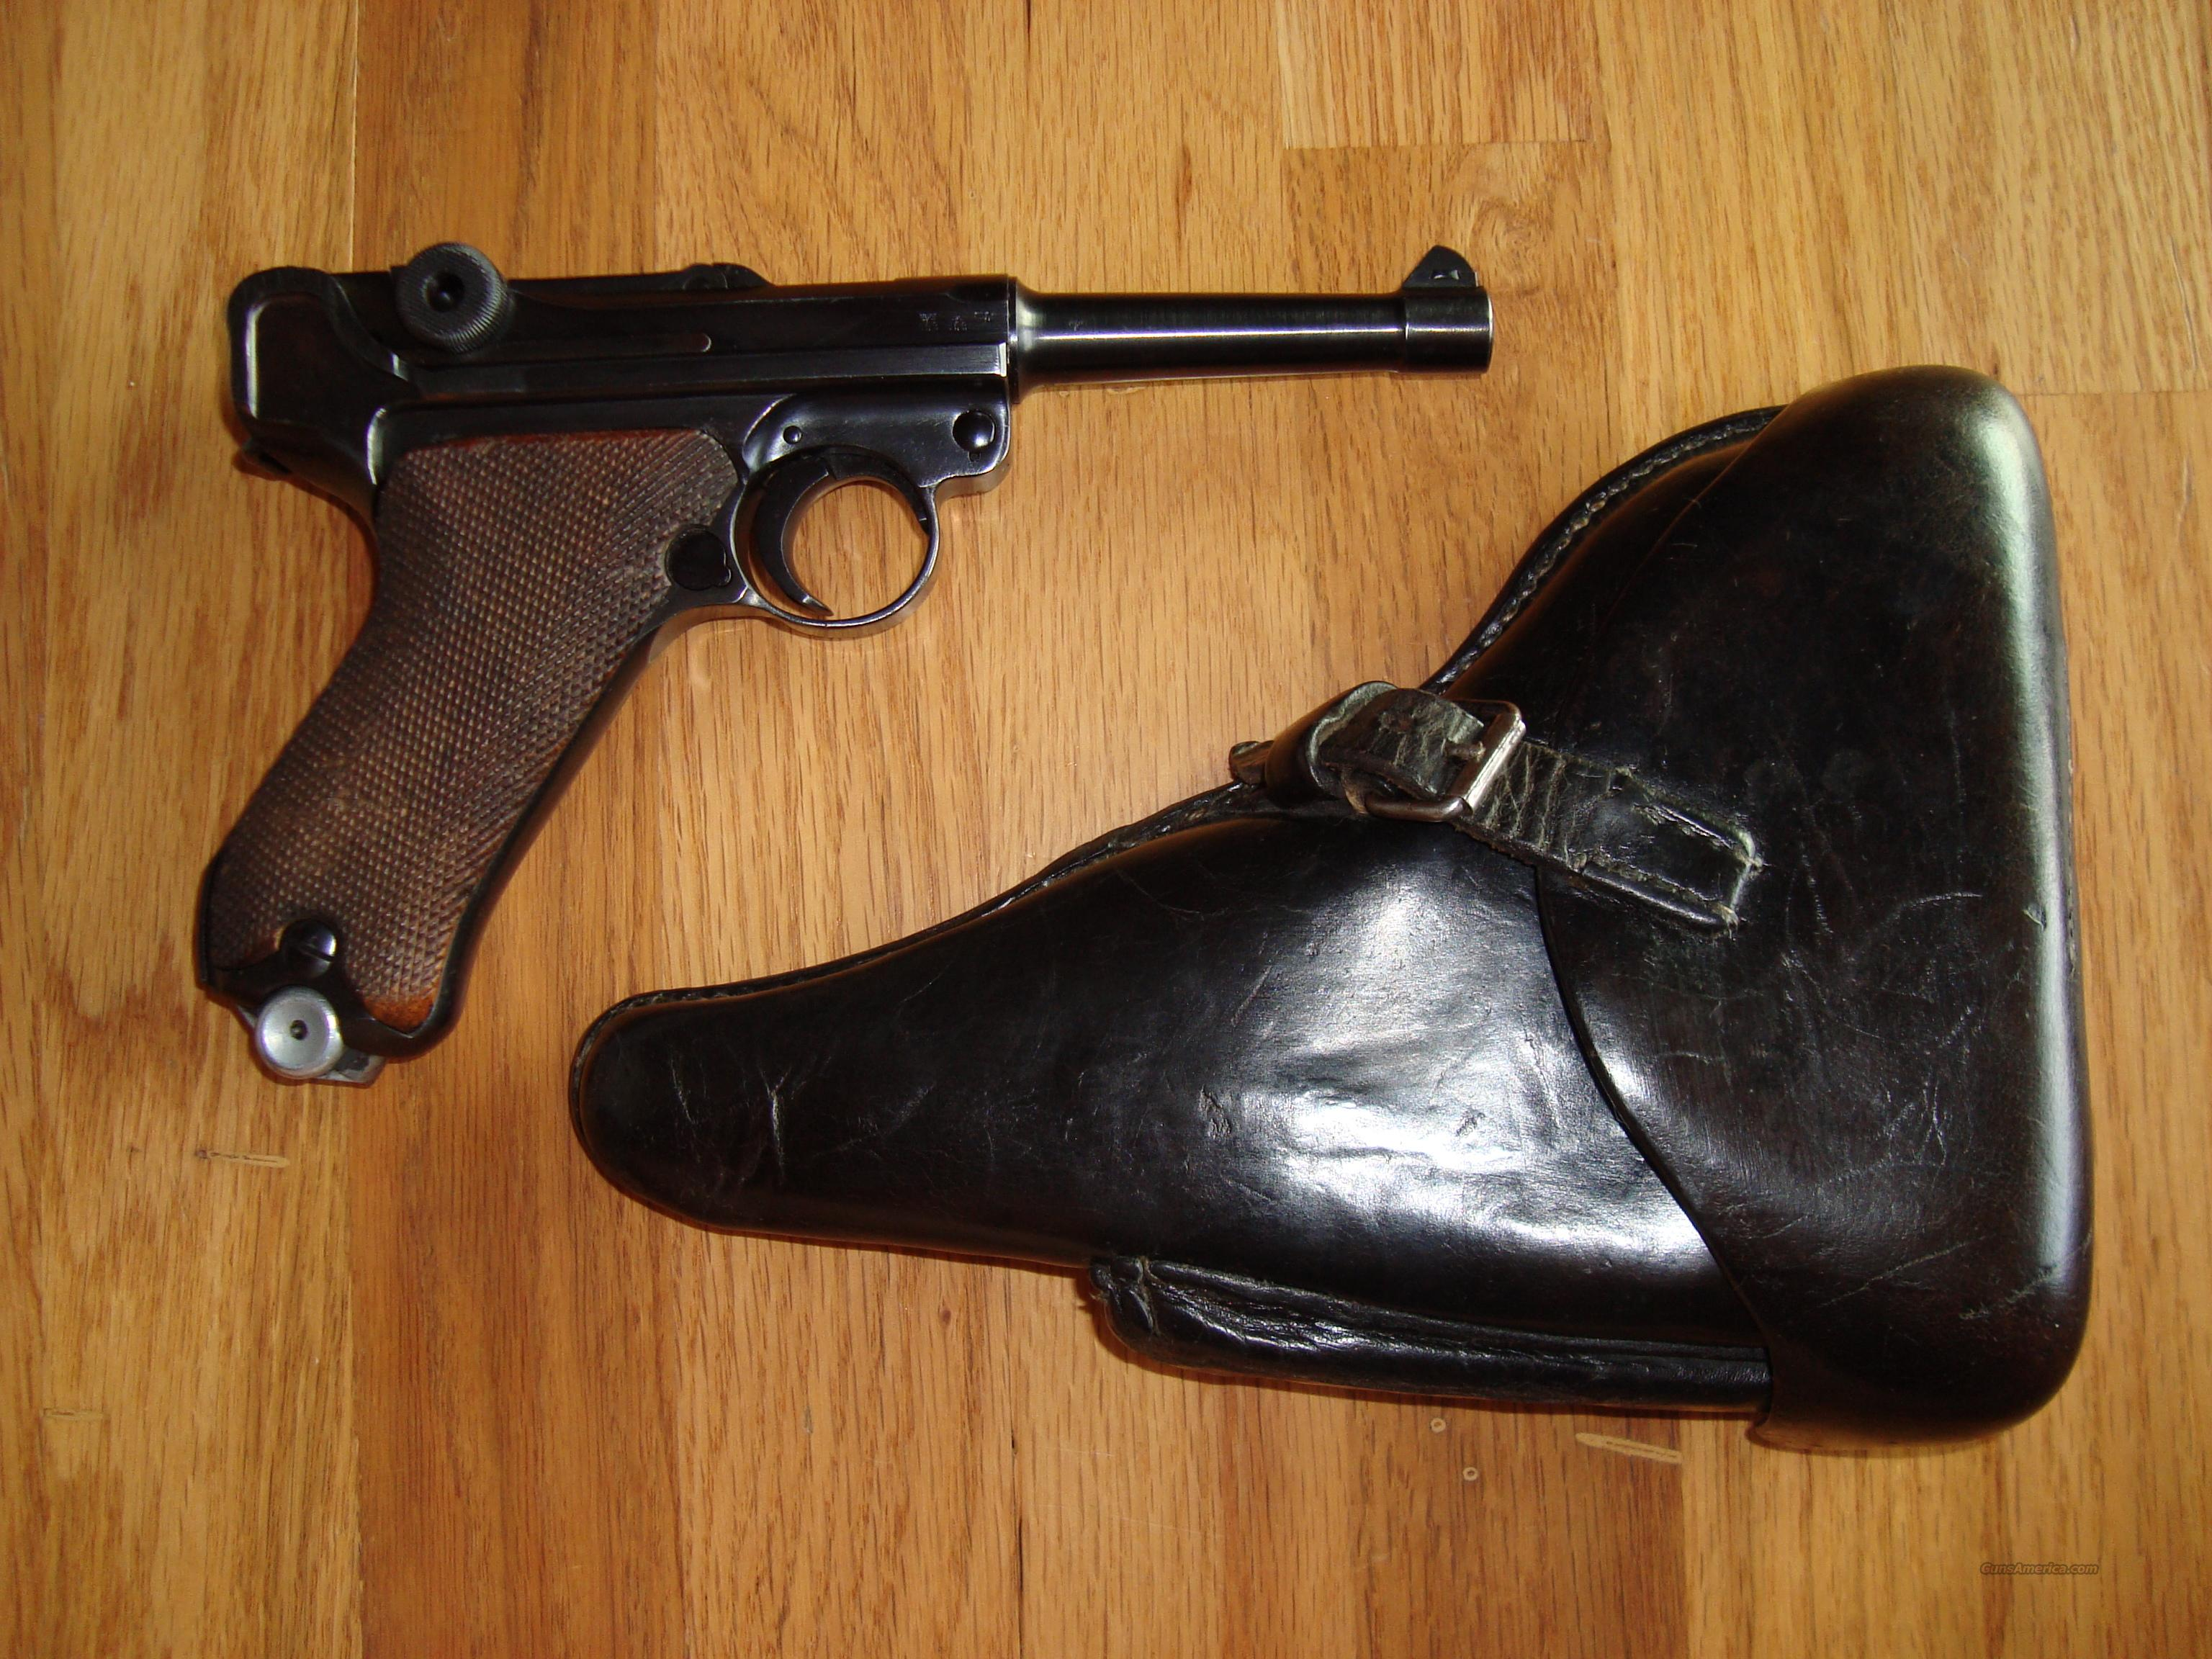 BYF 41 Luger with Holster - all matching numbers, 97%+  Guns > Pistols > Luger Pistols